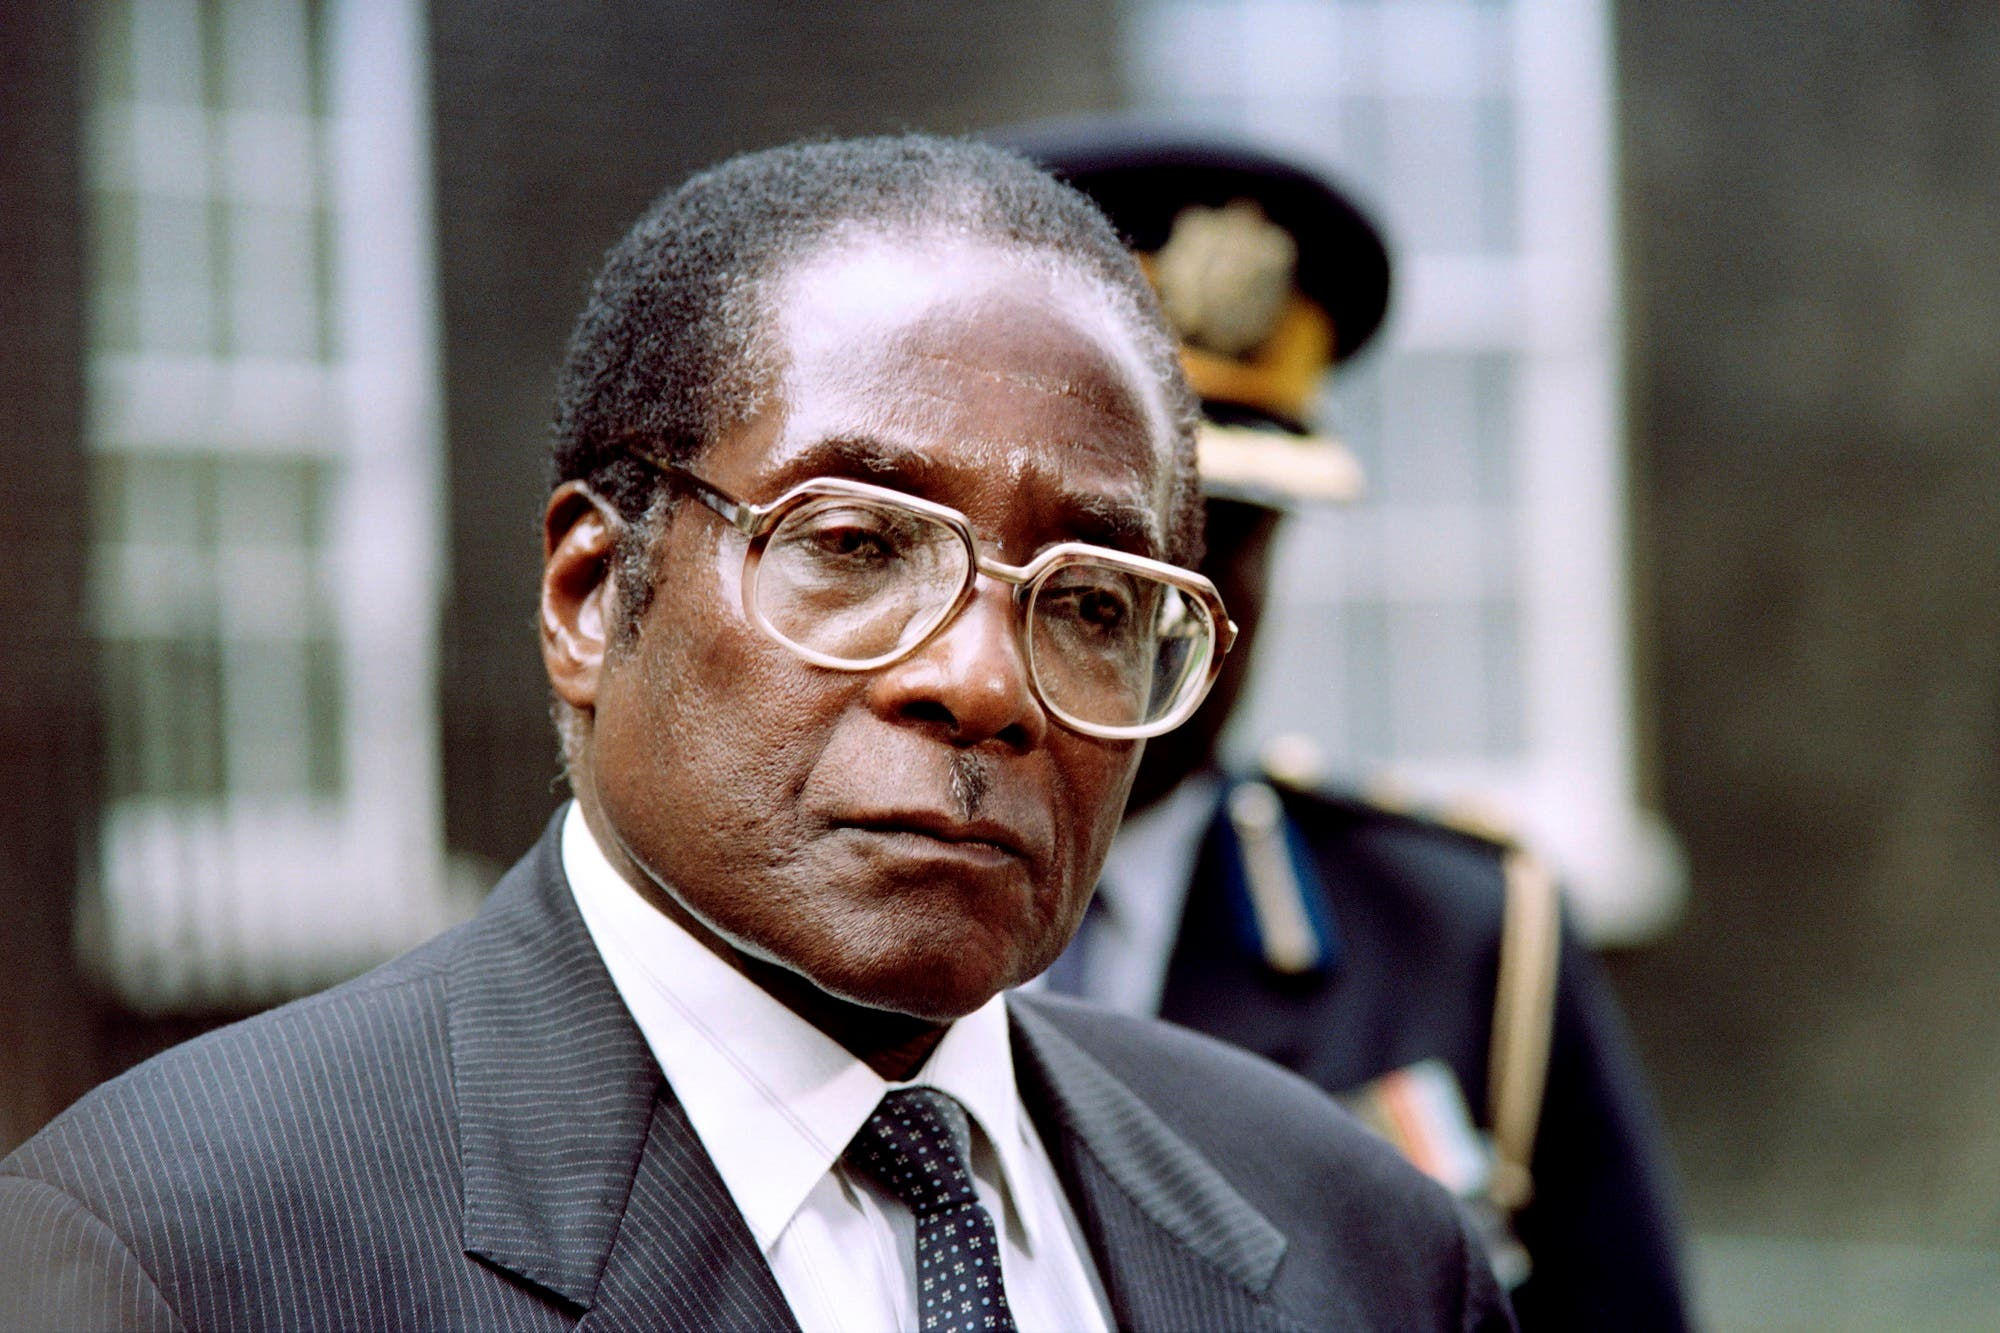 Mugabe answers the press after a meeting with British Prime Minister John Major in London on May 23, 1991. (AFP)